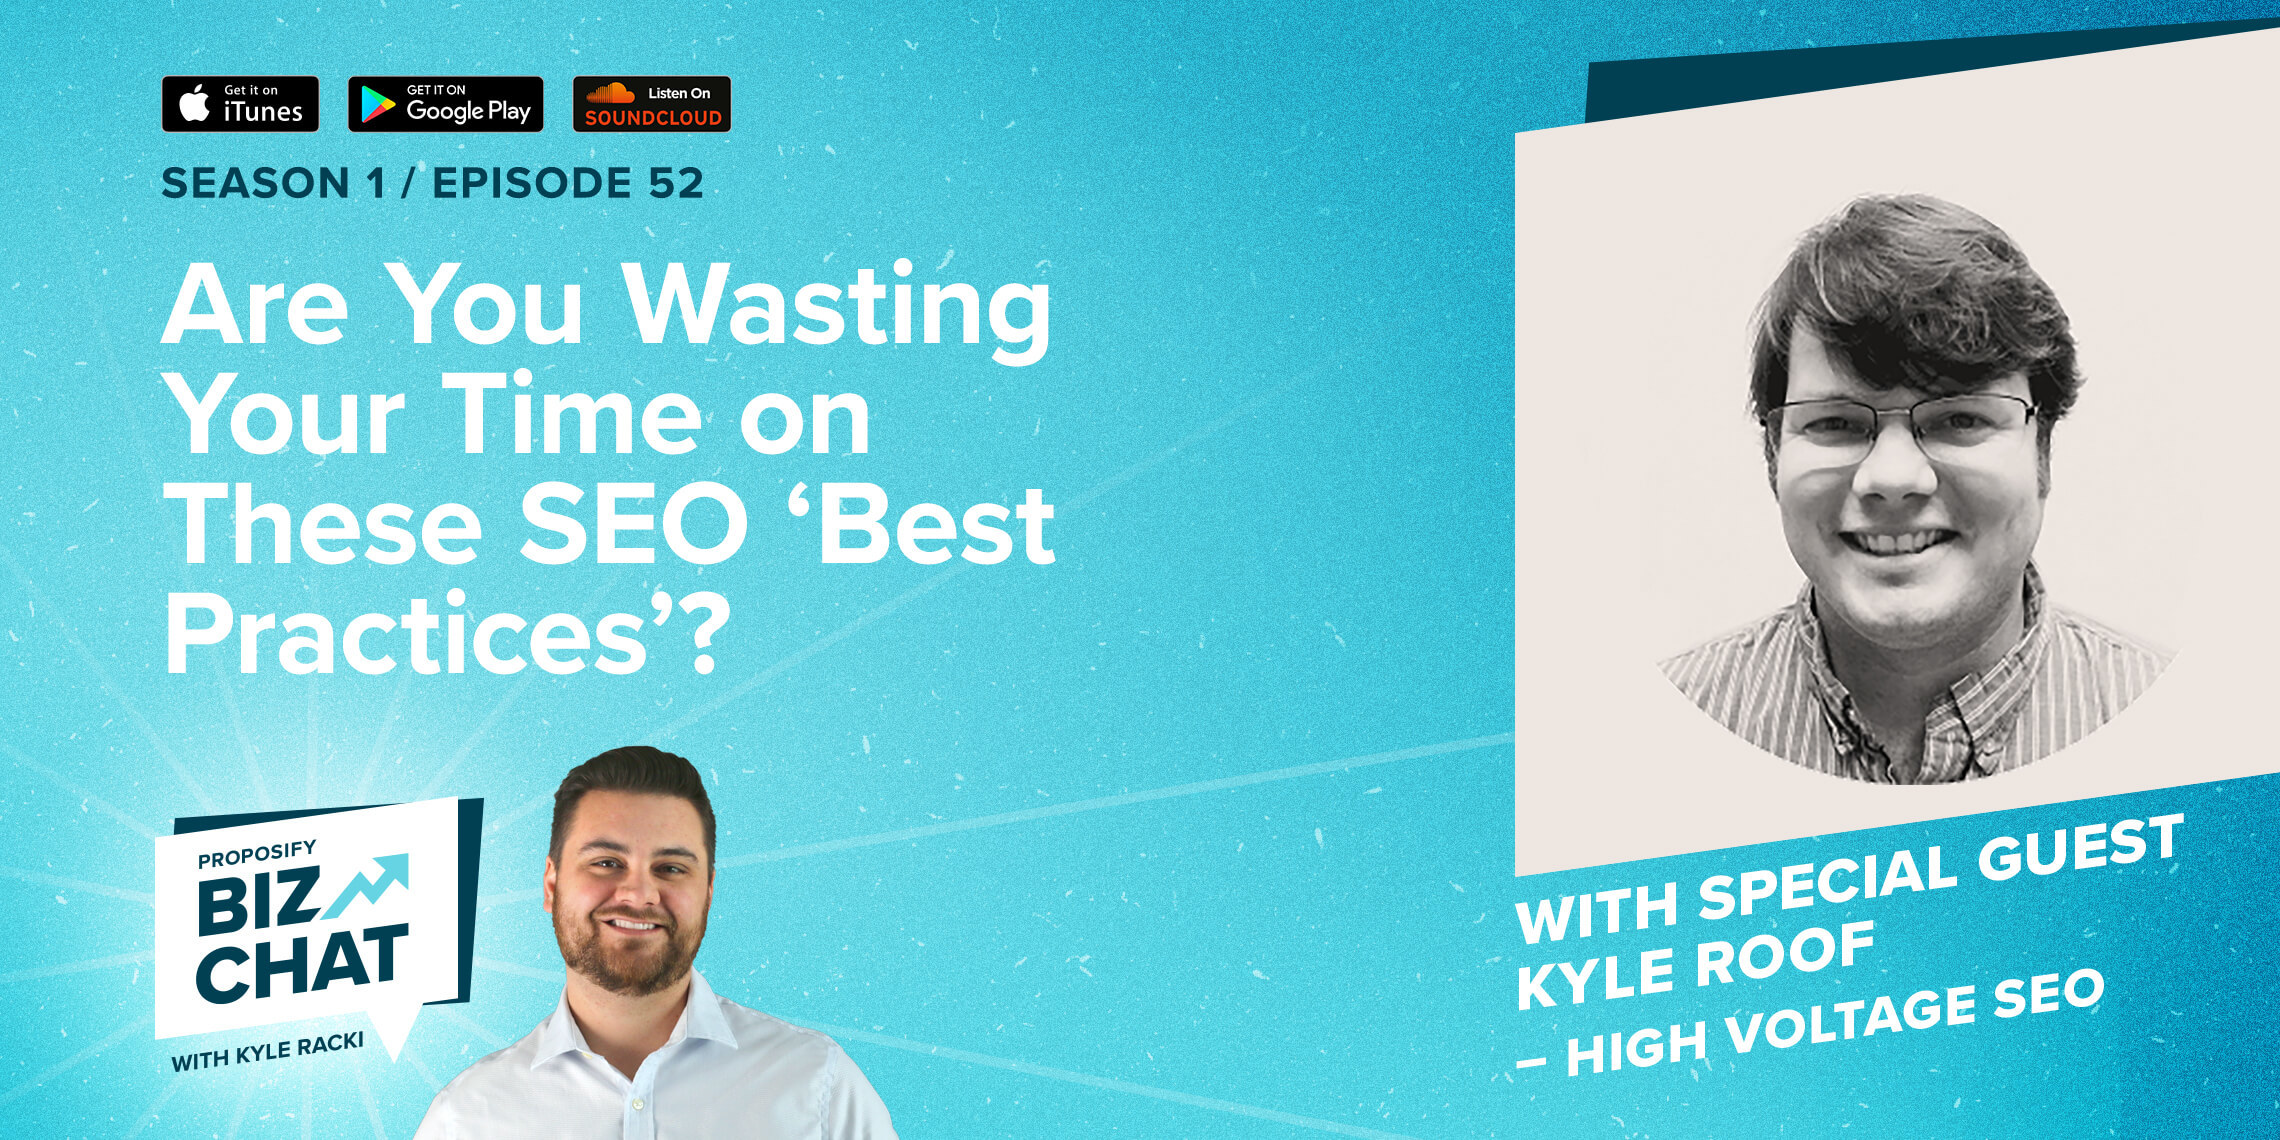 Are You Wasting Your Time On These SEO 'Best Practices'?